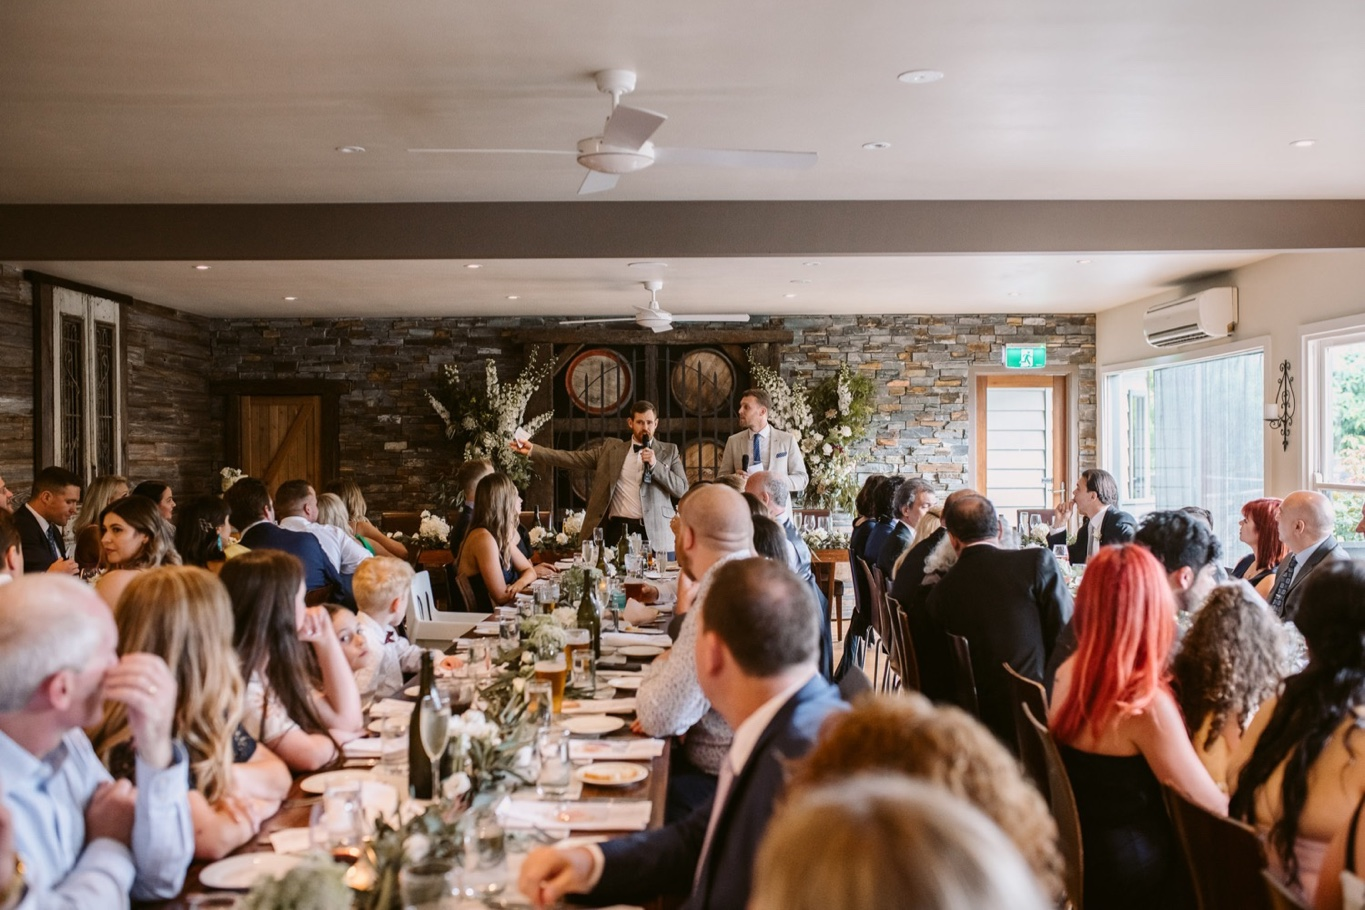 Immerse Yarra Valley Winery Wedding Photography102.jpg